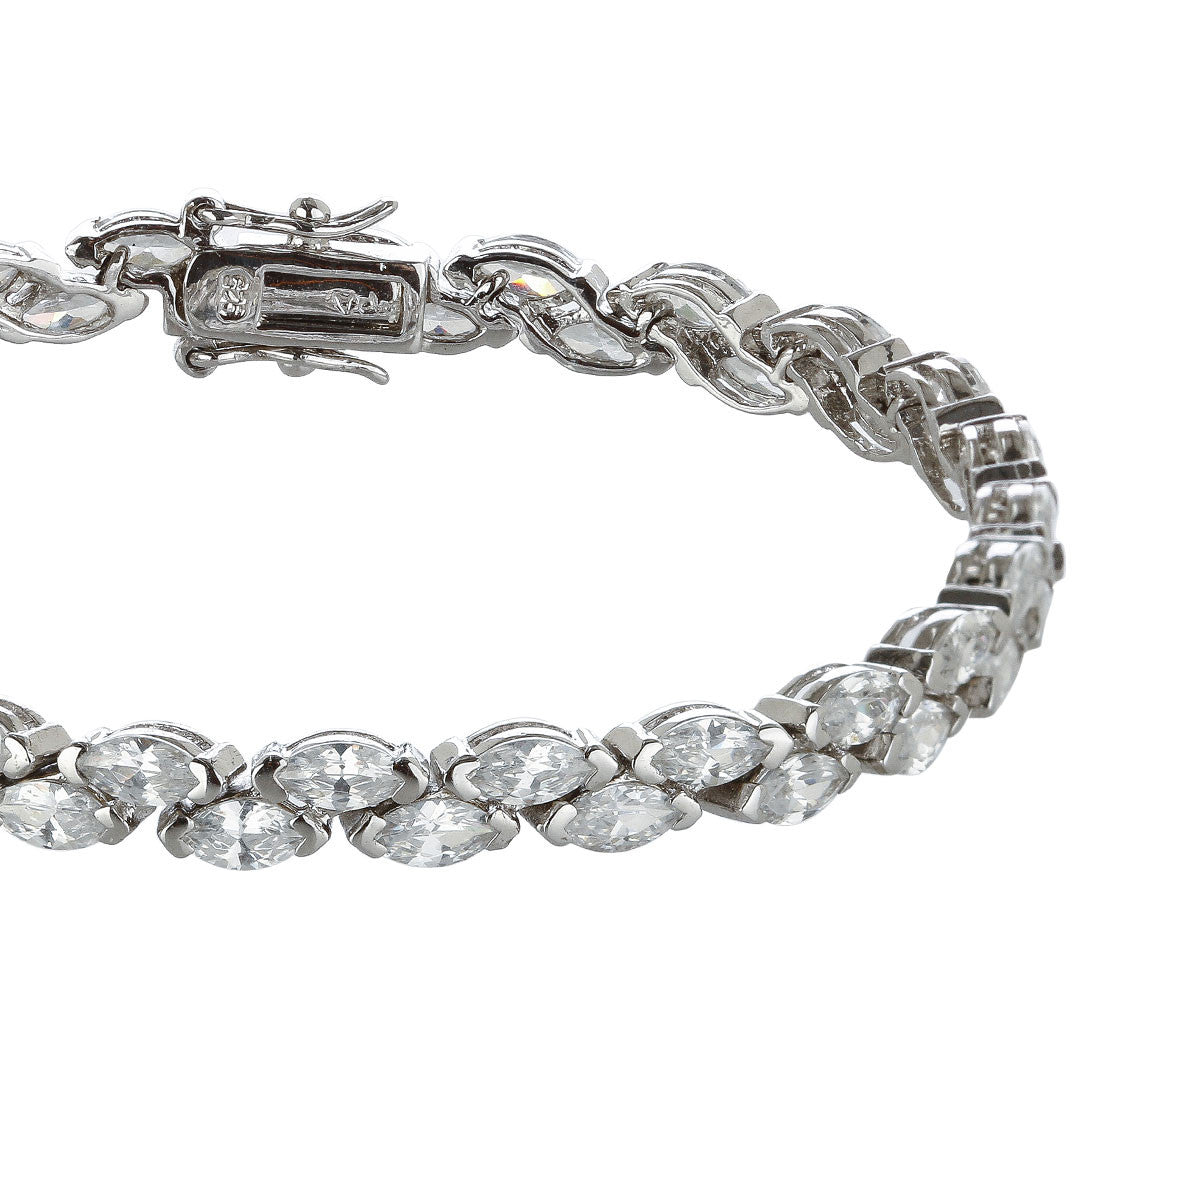 Staggered Marquis Set Tennis Bracelet - The Firestone Collection - Fashion Jewelry & Accessories